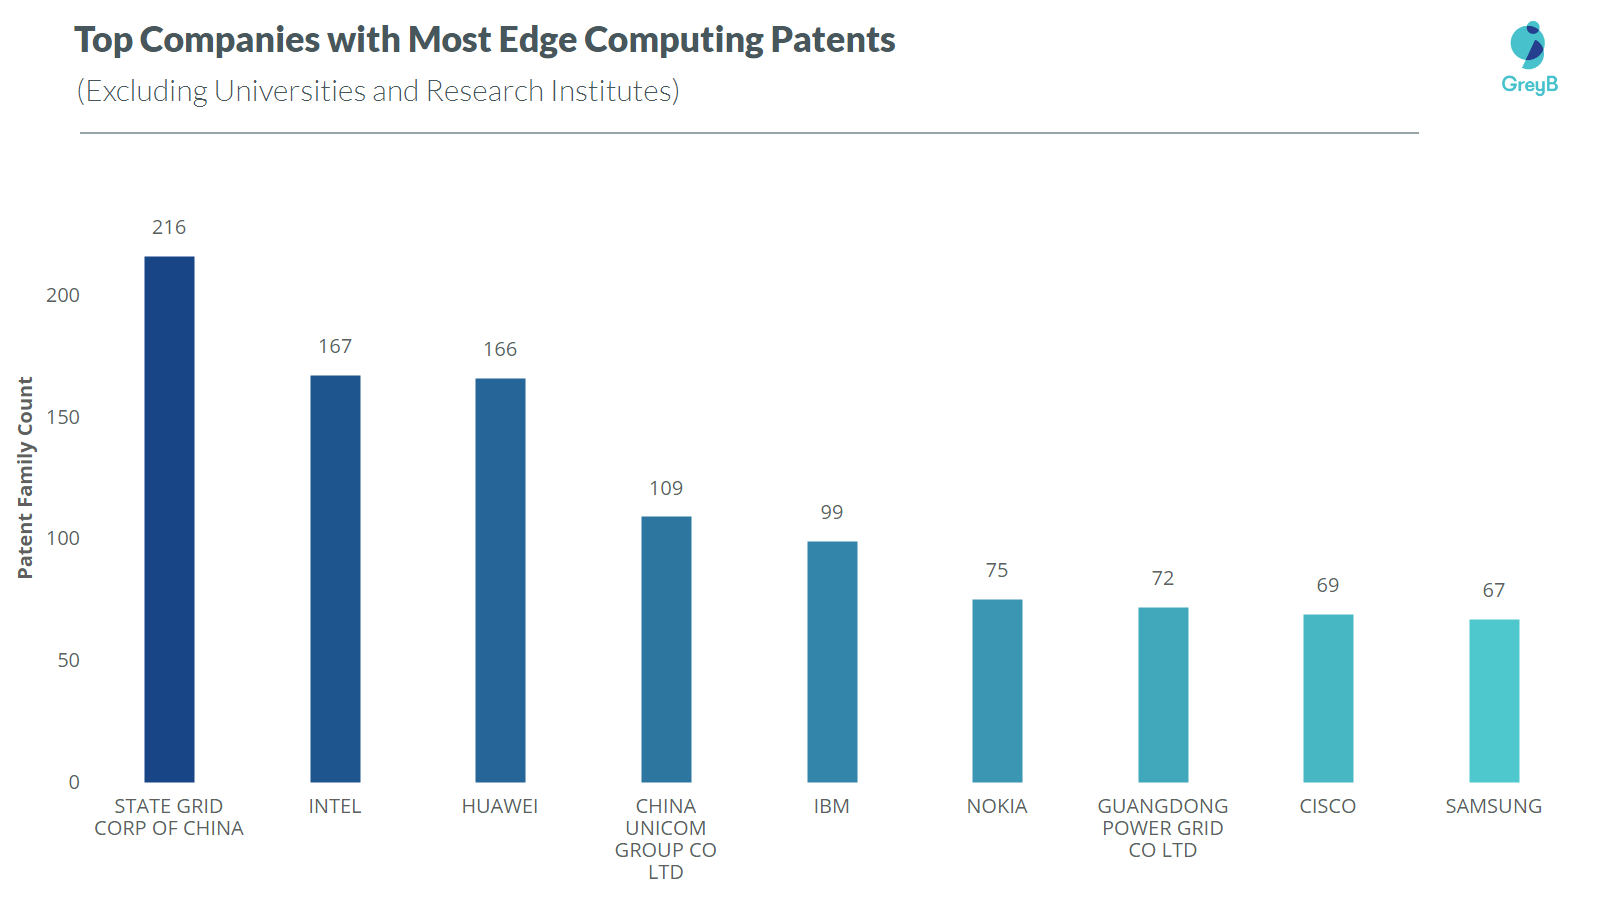 Top companies with edge computing patents